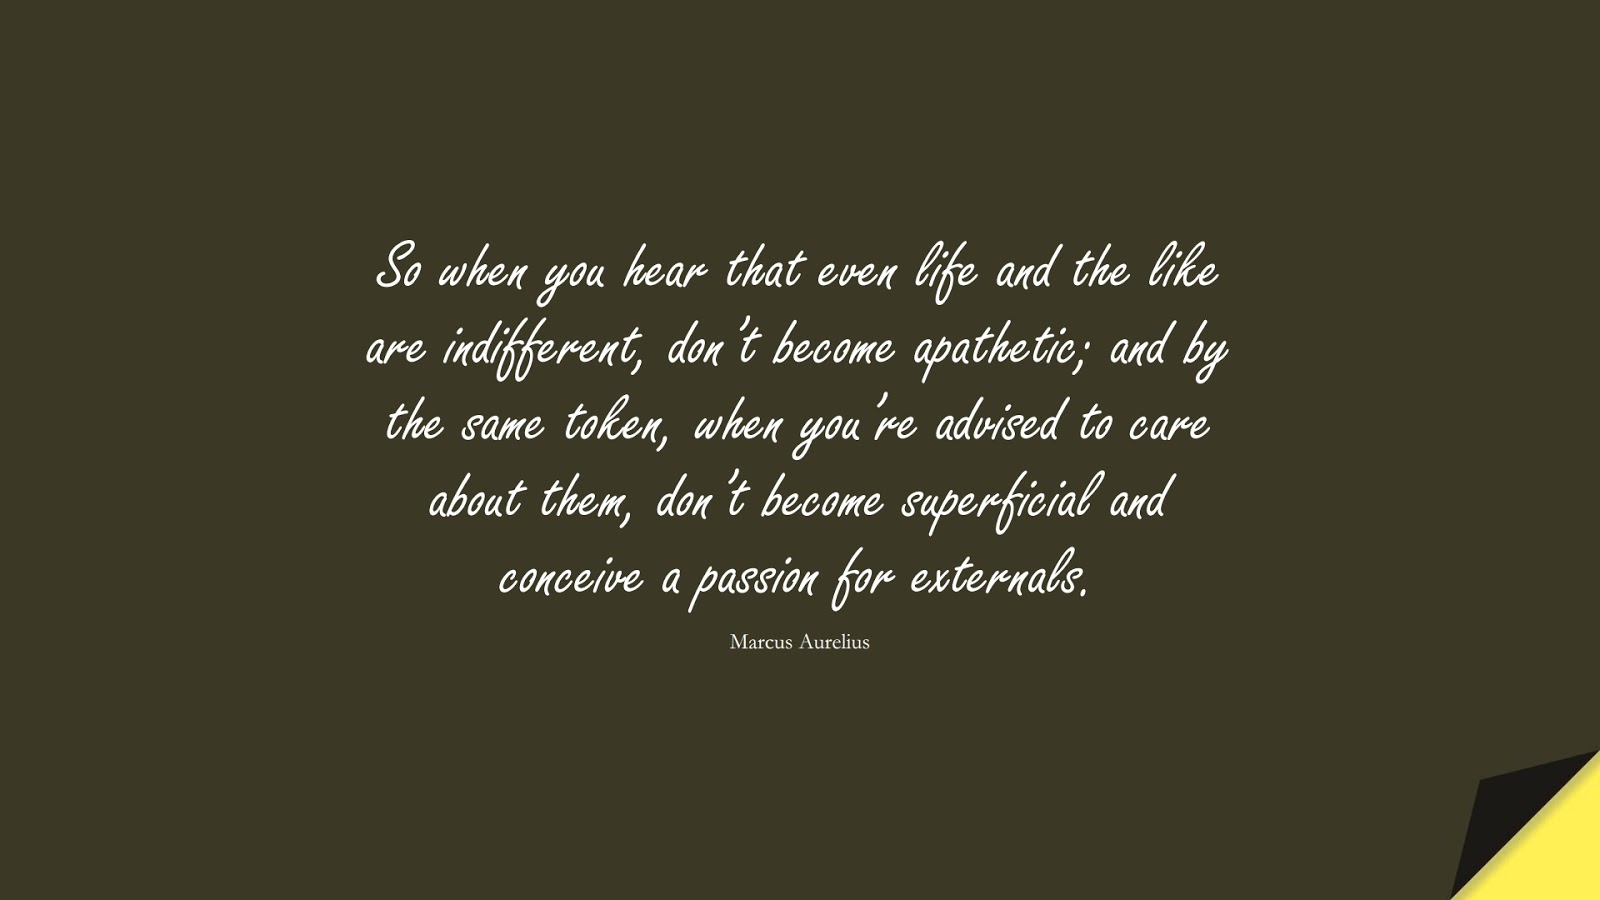 So when you hear that even life and the like are indifferent, don't become apathetic; and by the same token, when you're advised to care about them, don't become superficial and conceive a passion for externals. (Marcus Aurelius);  #MarcusAureliusQuotes